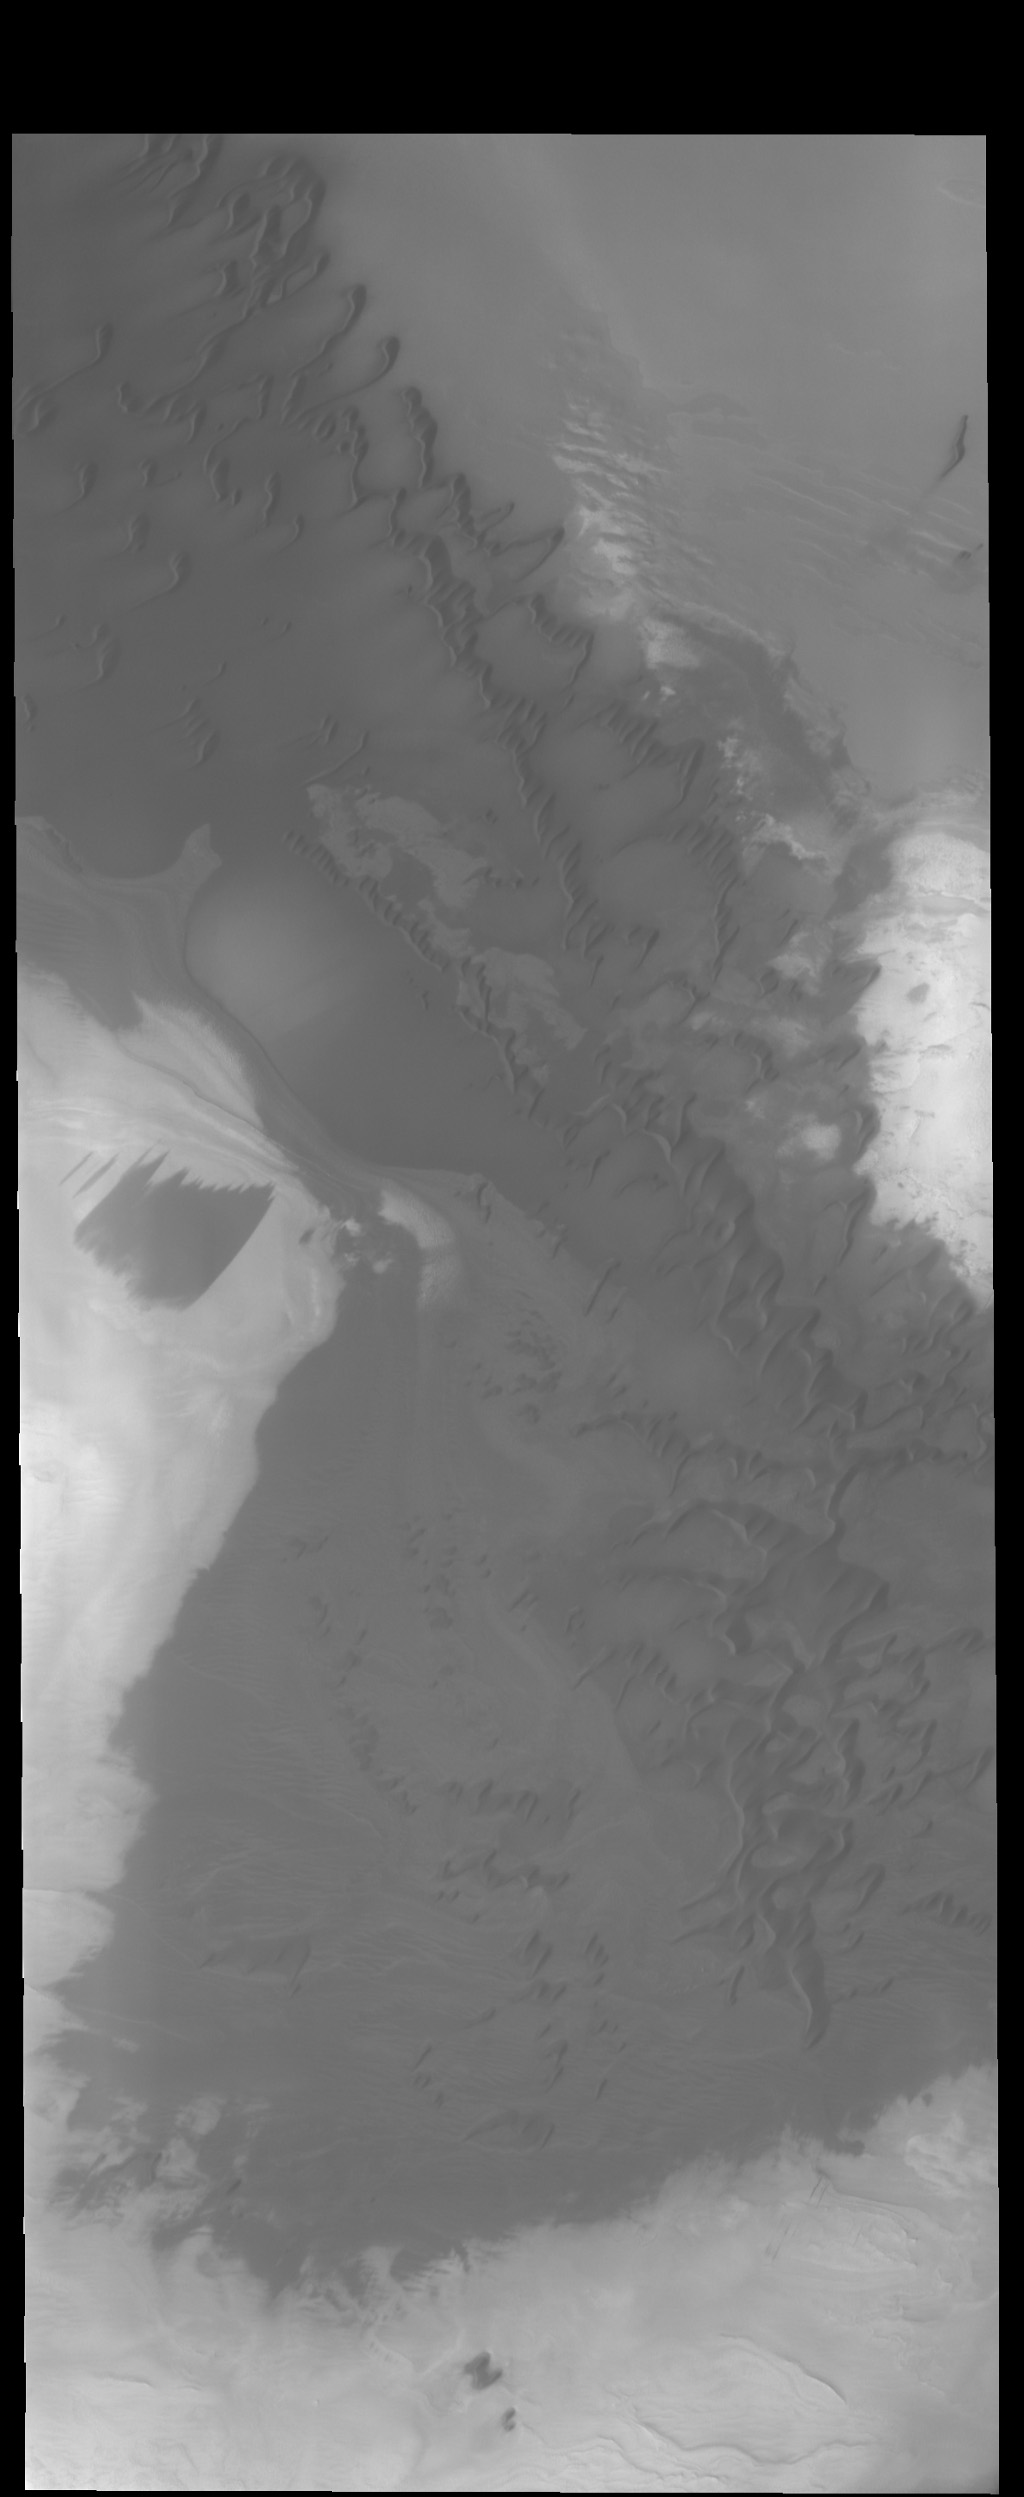 The dunes in this image captured by NASA's 2001 Mars Odyssey spacecraft are near the large dune field called Olympia Undae.